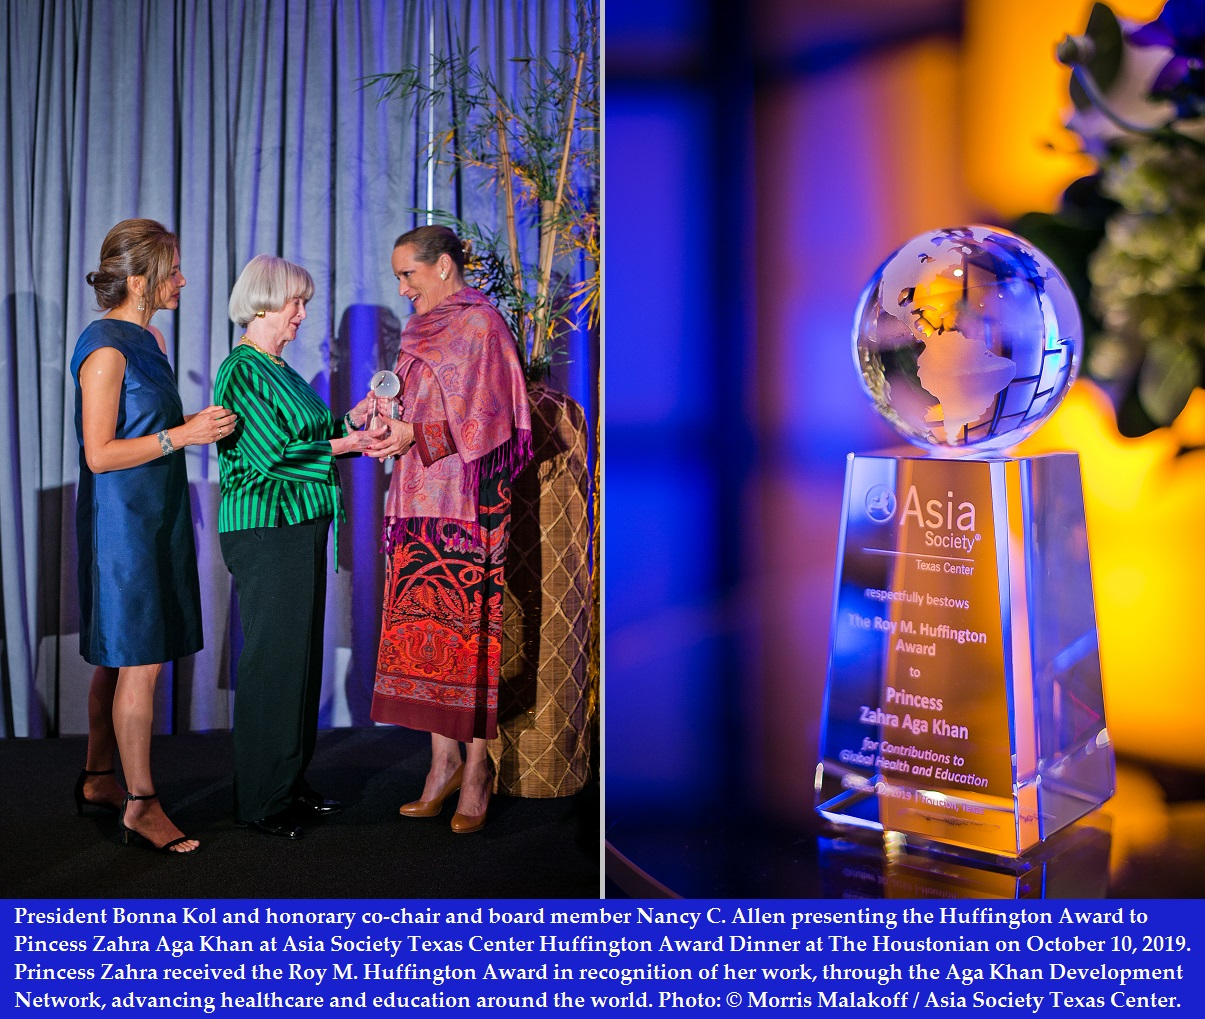 Photos and Report: Asia Society Texas Center Honors Princess Zahra Aga Khan with annual Huffington Award